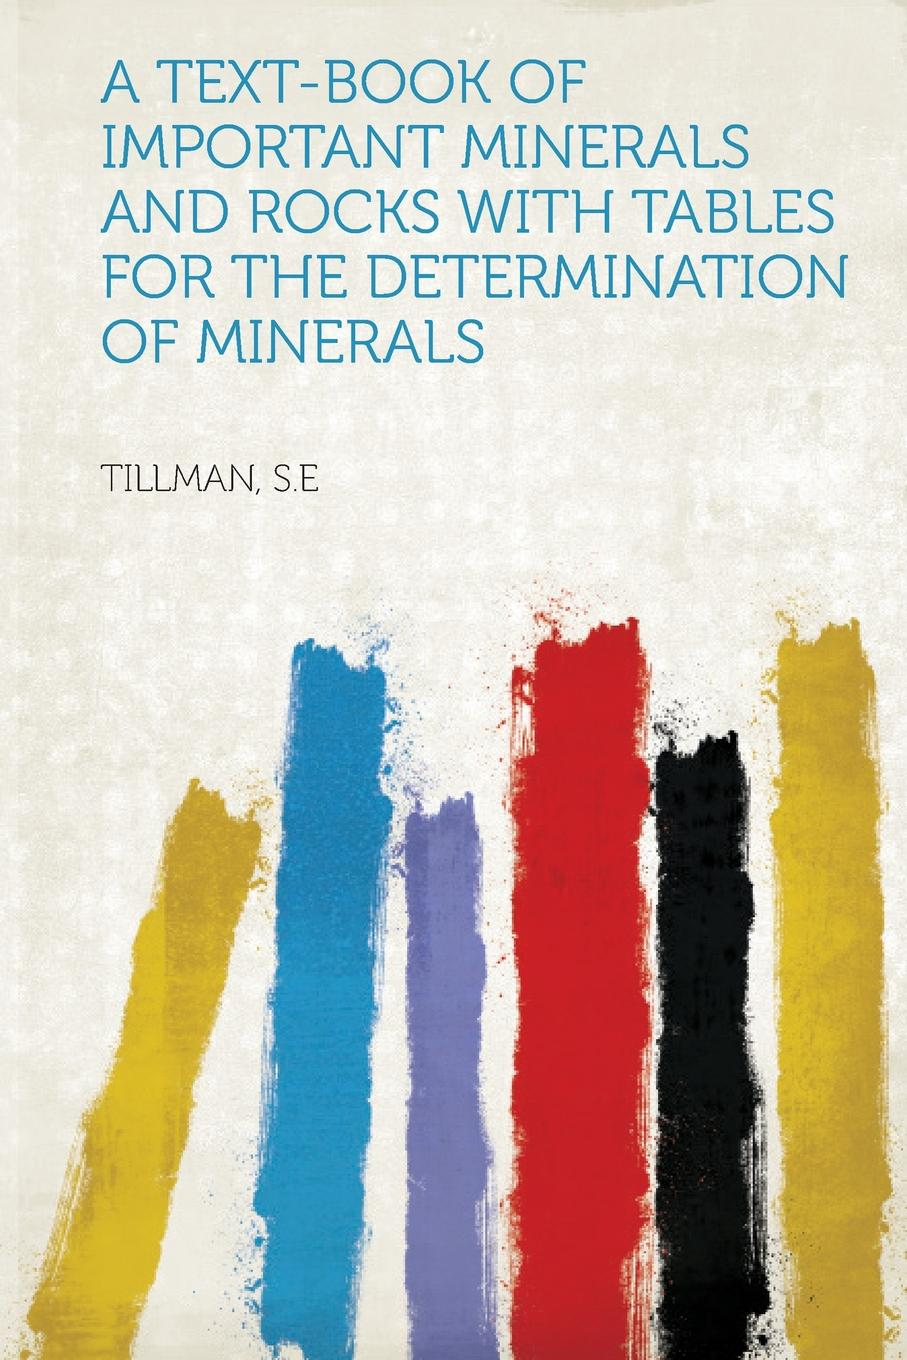 Tillman S. E. A Text-Book of Important Minerals and Rocks with Tables for the Determination of Minerals rocks and minerals